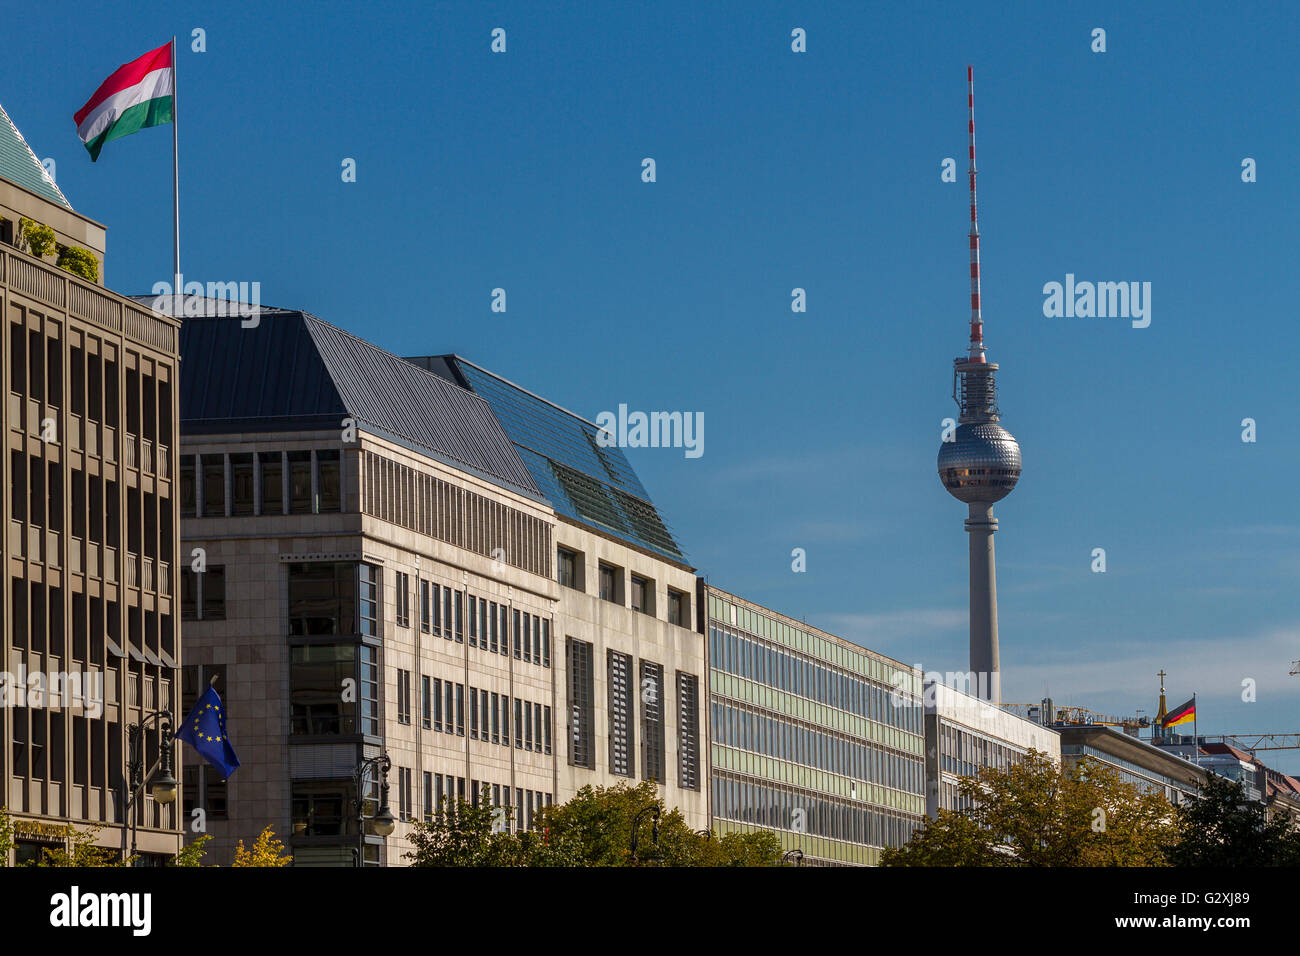 Tv Tower Restaurant Berlin Stockfotos Tv Tower Restaurant Berlin